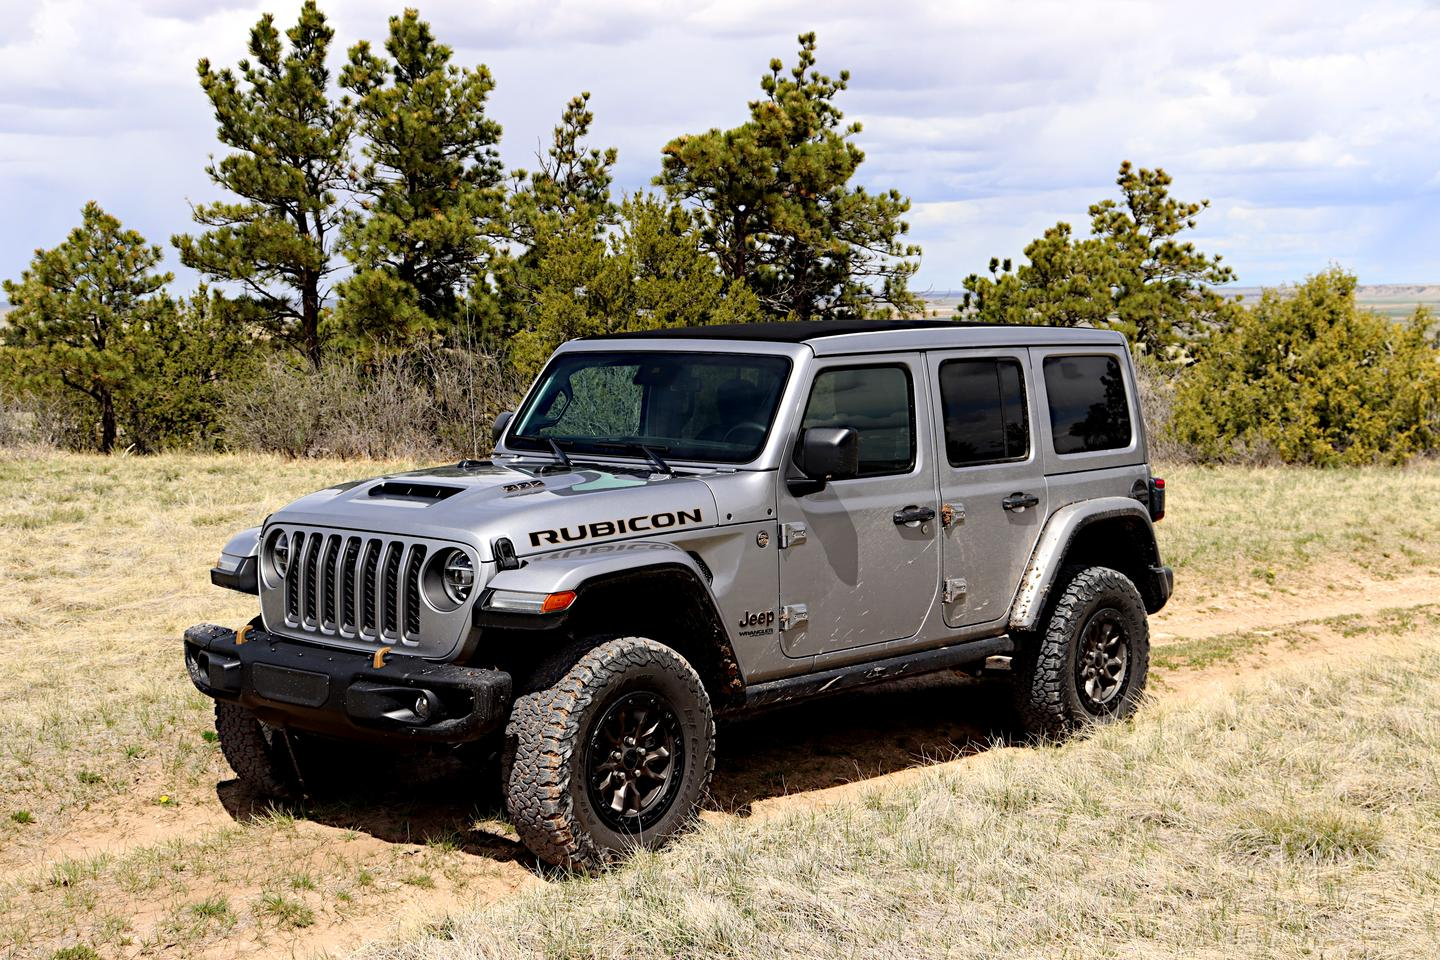 The Wrangler 392 puts a 6.4L V8 under the hood for 470 HP and 470 lb-ft of torque